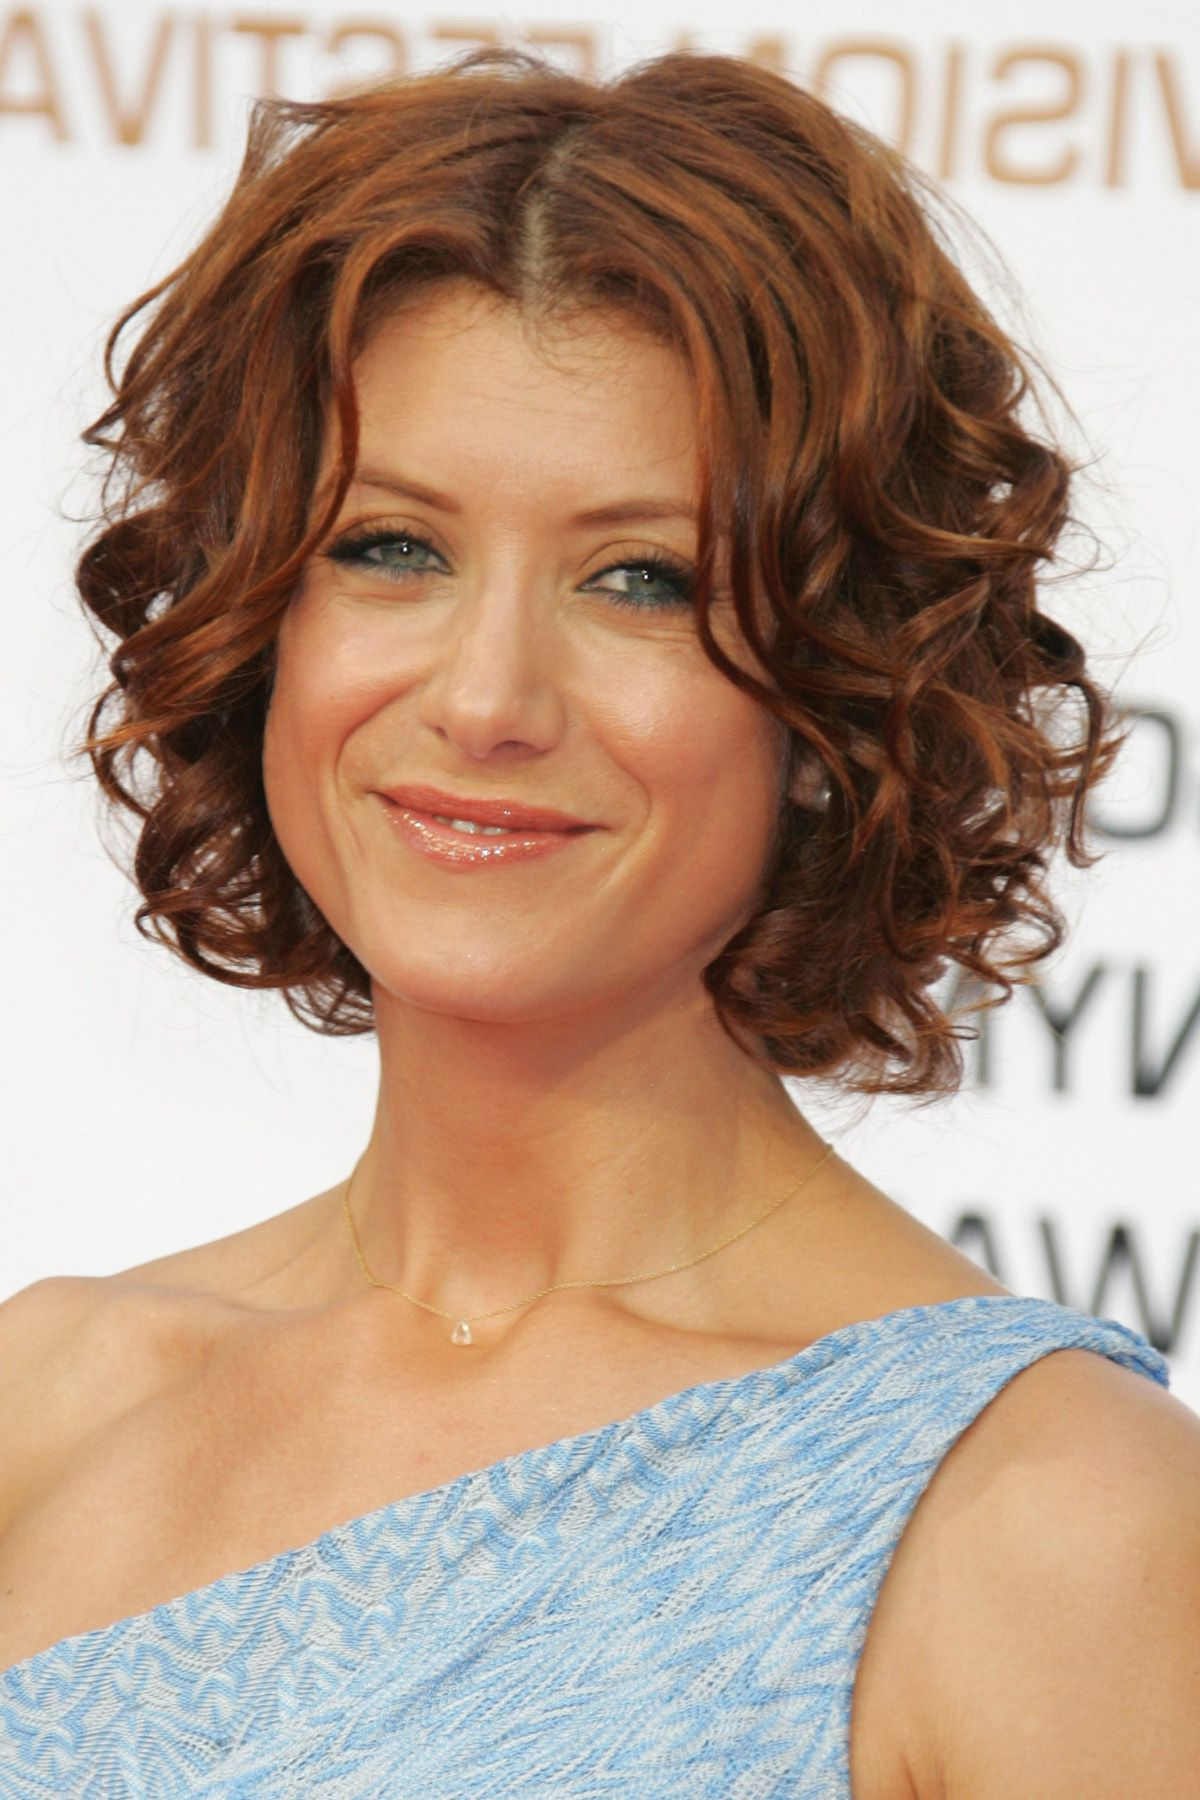 14 Best Short Curly Hairstyles For Women – Short Haircuts For Curly Hair With Short Hairstyles For Ladies With Curly Hair (View 1 of 25)